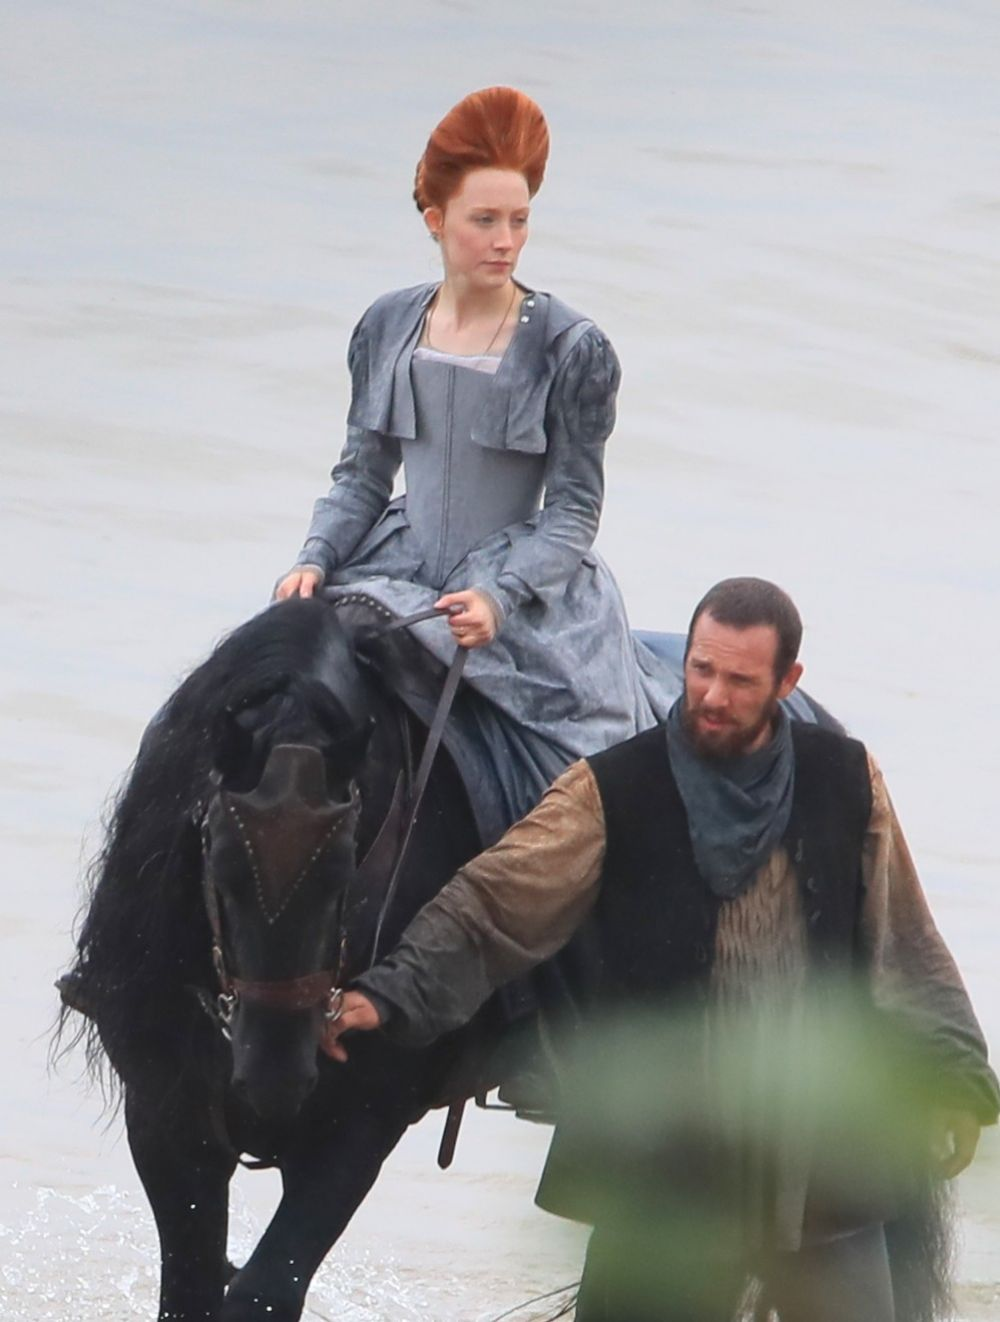 SAOIRSE RONAN on the Set of Mary Queen of Scots in Scotland 09/11/2017